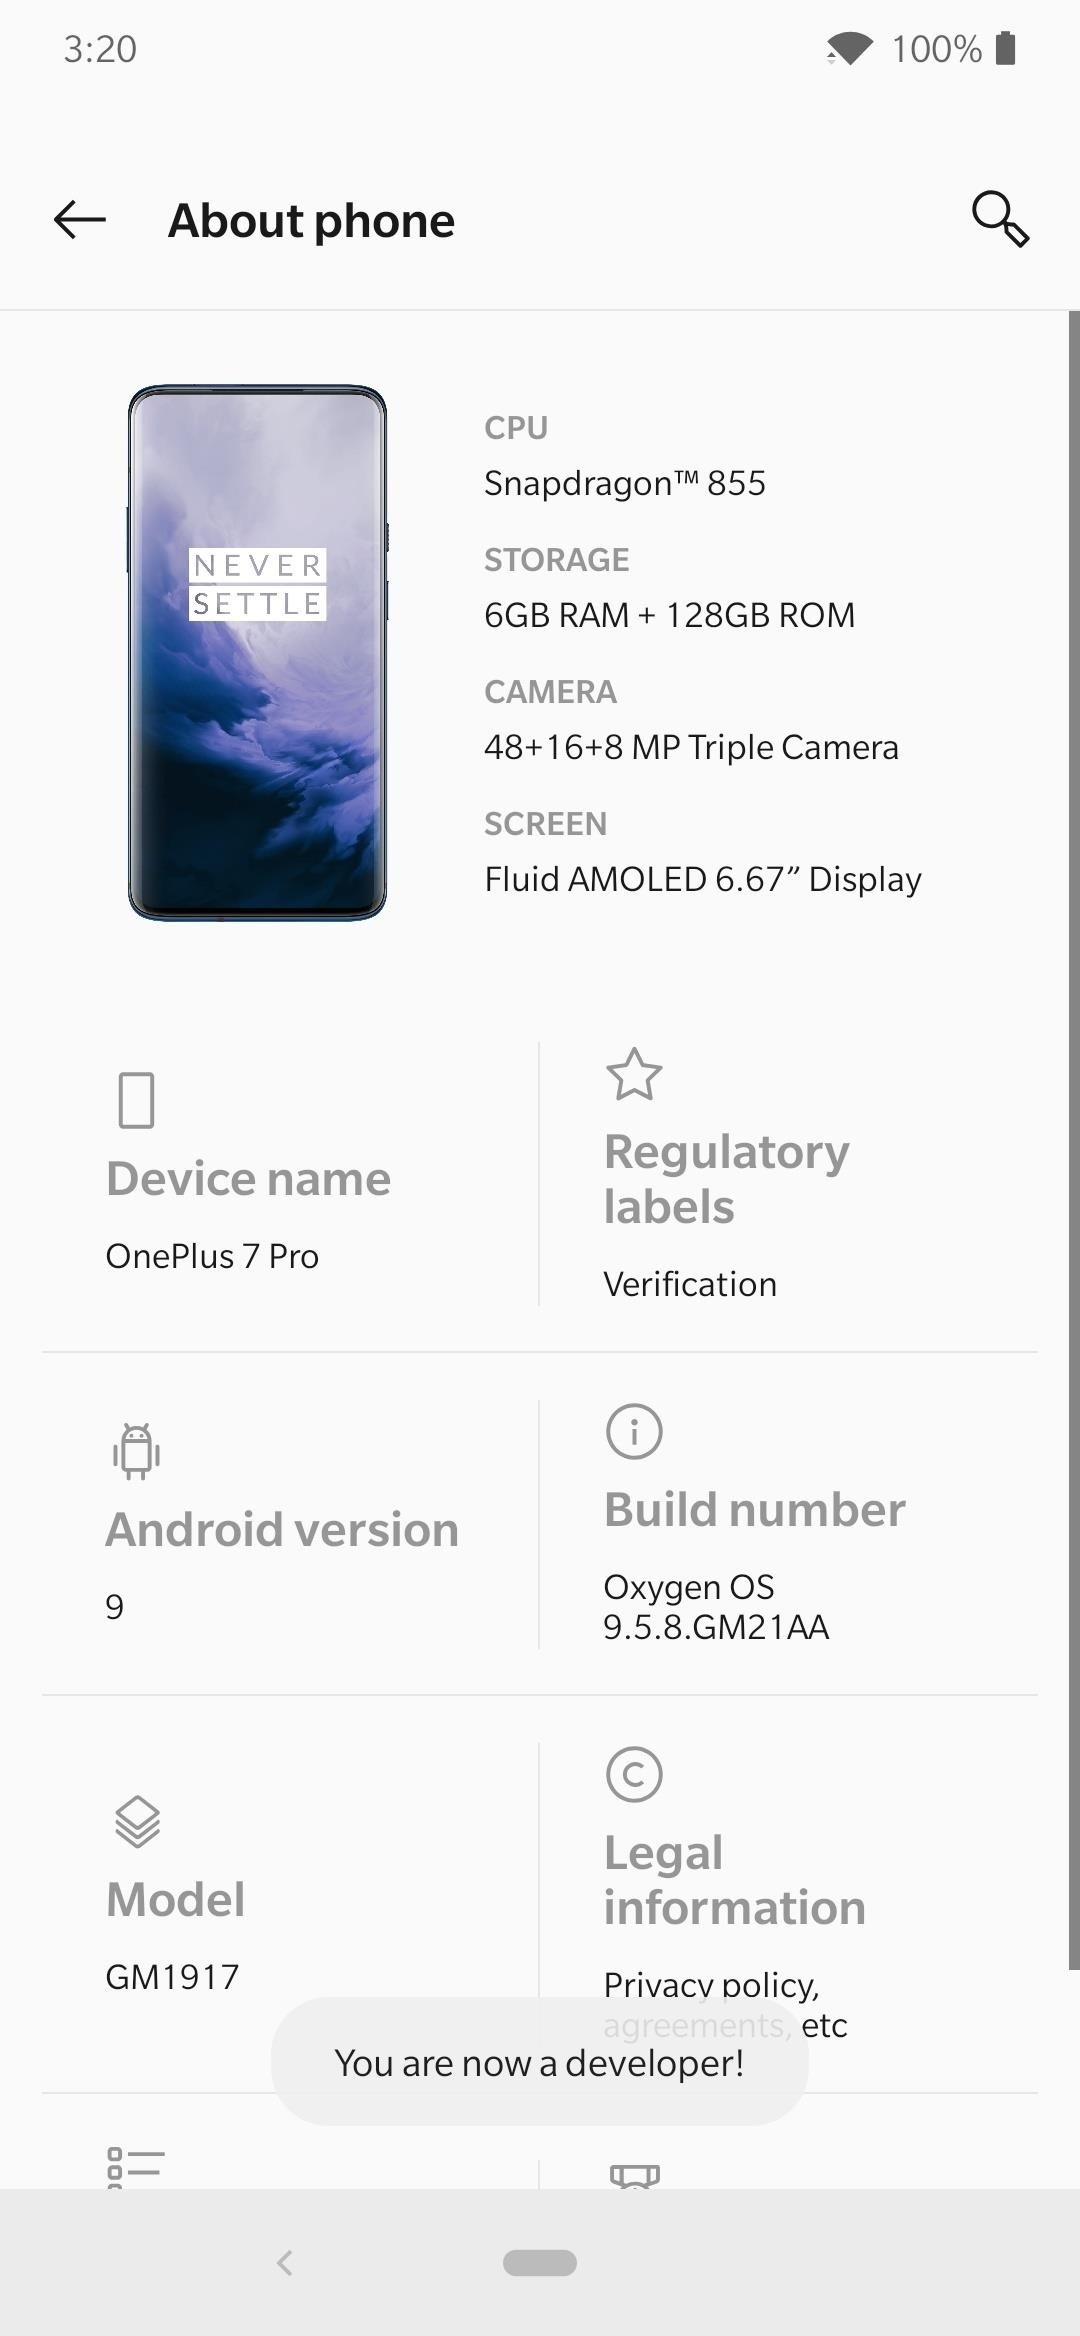 How to Unlock the Bootloader on Your OnePlus 7 Pro